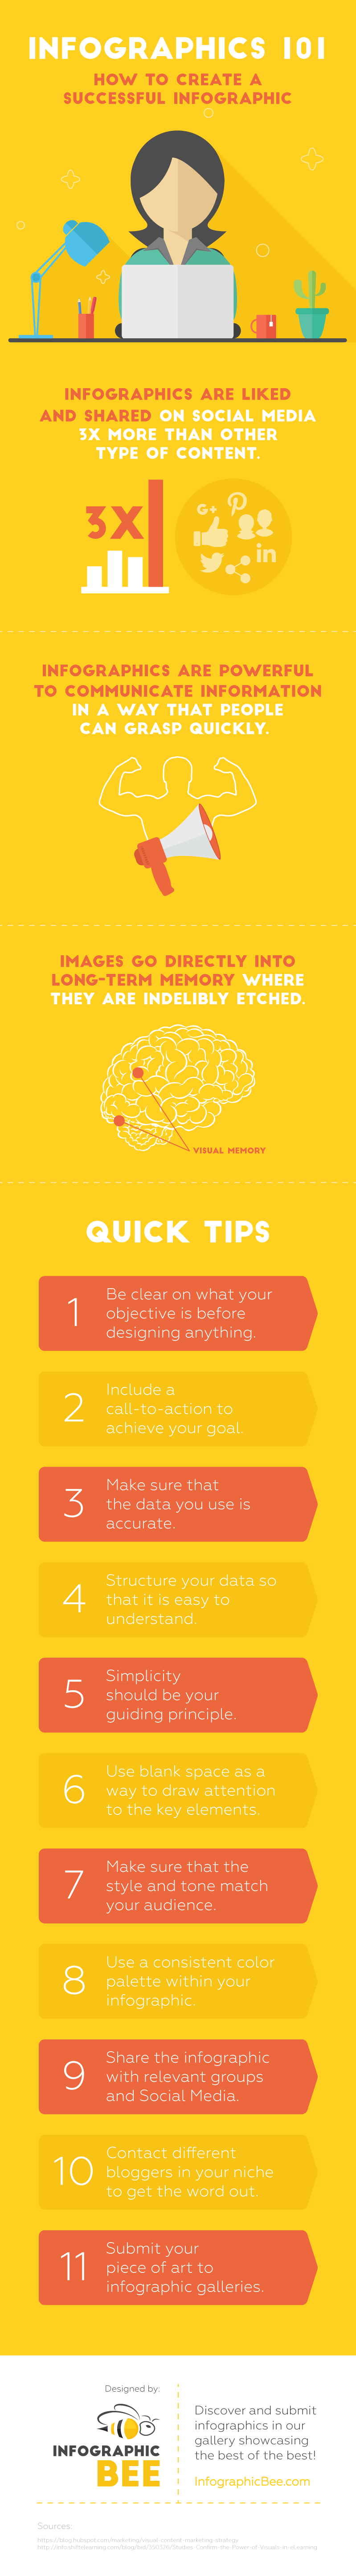 infographics-101-create-successful-infographic